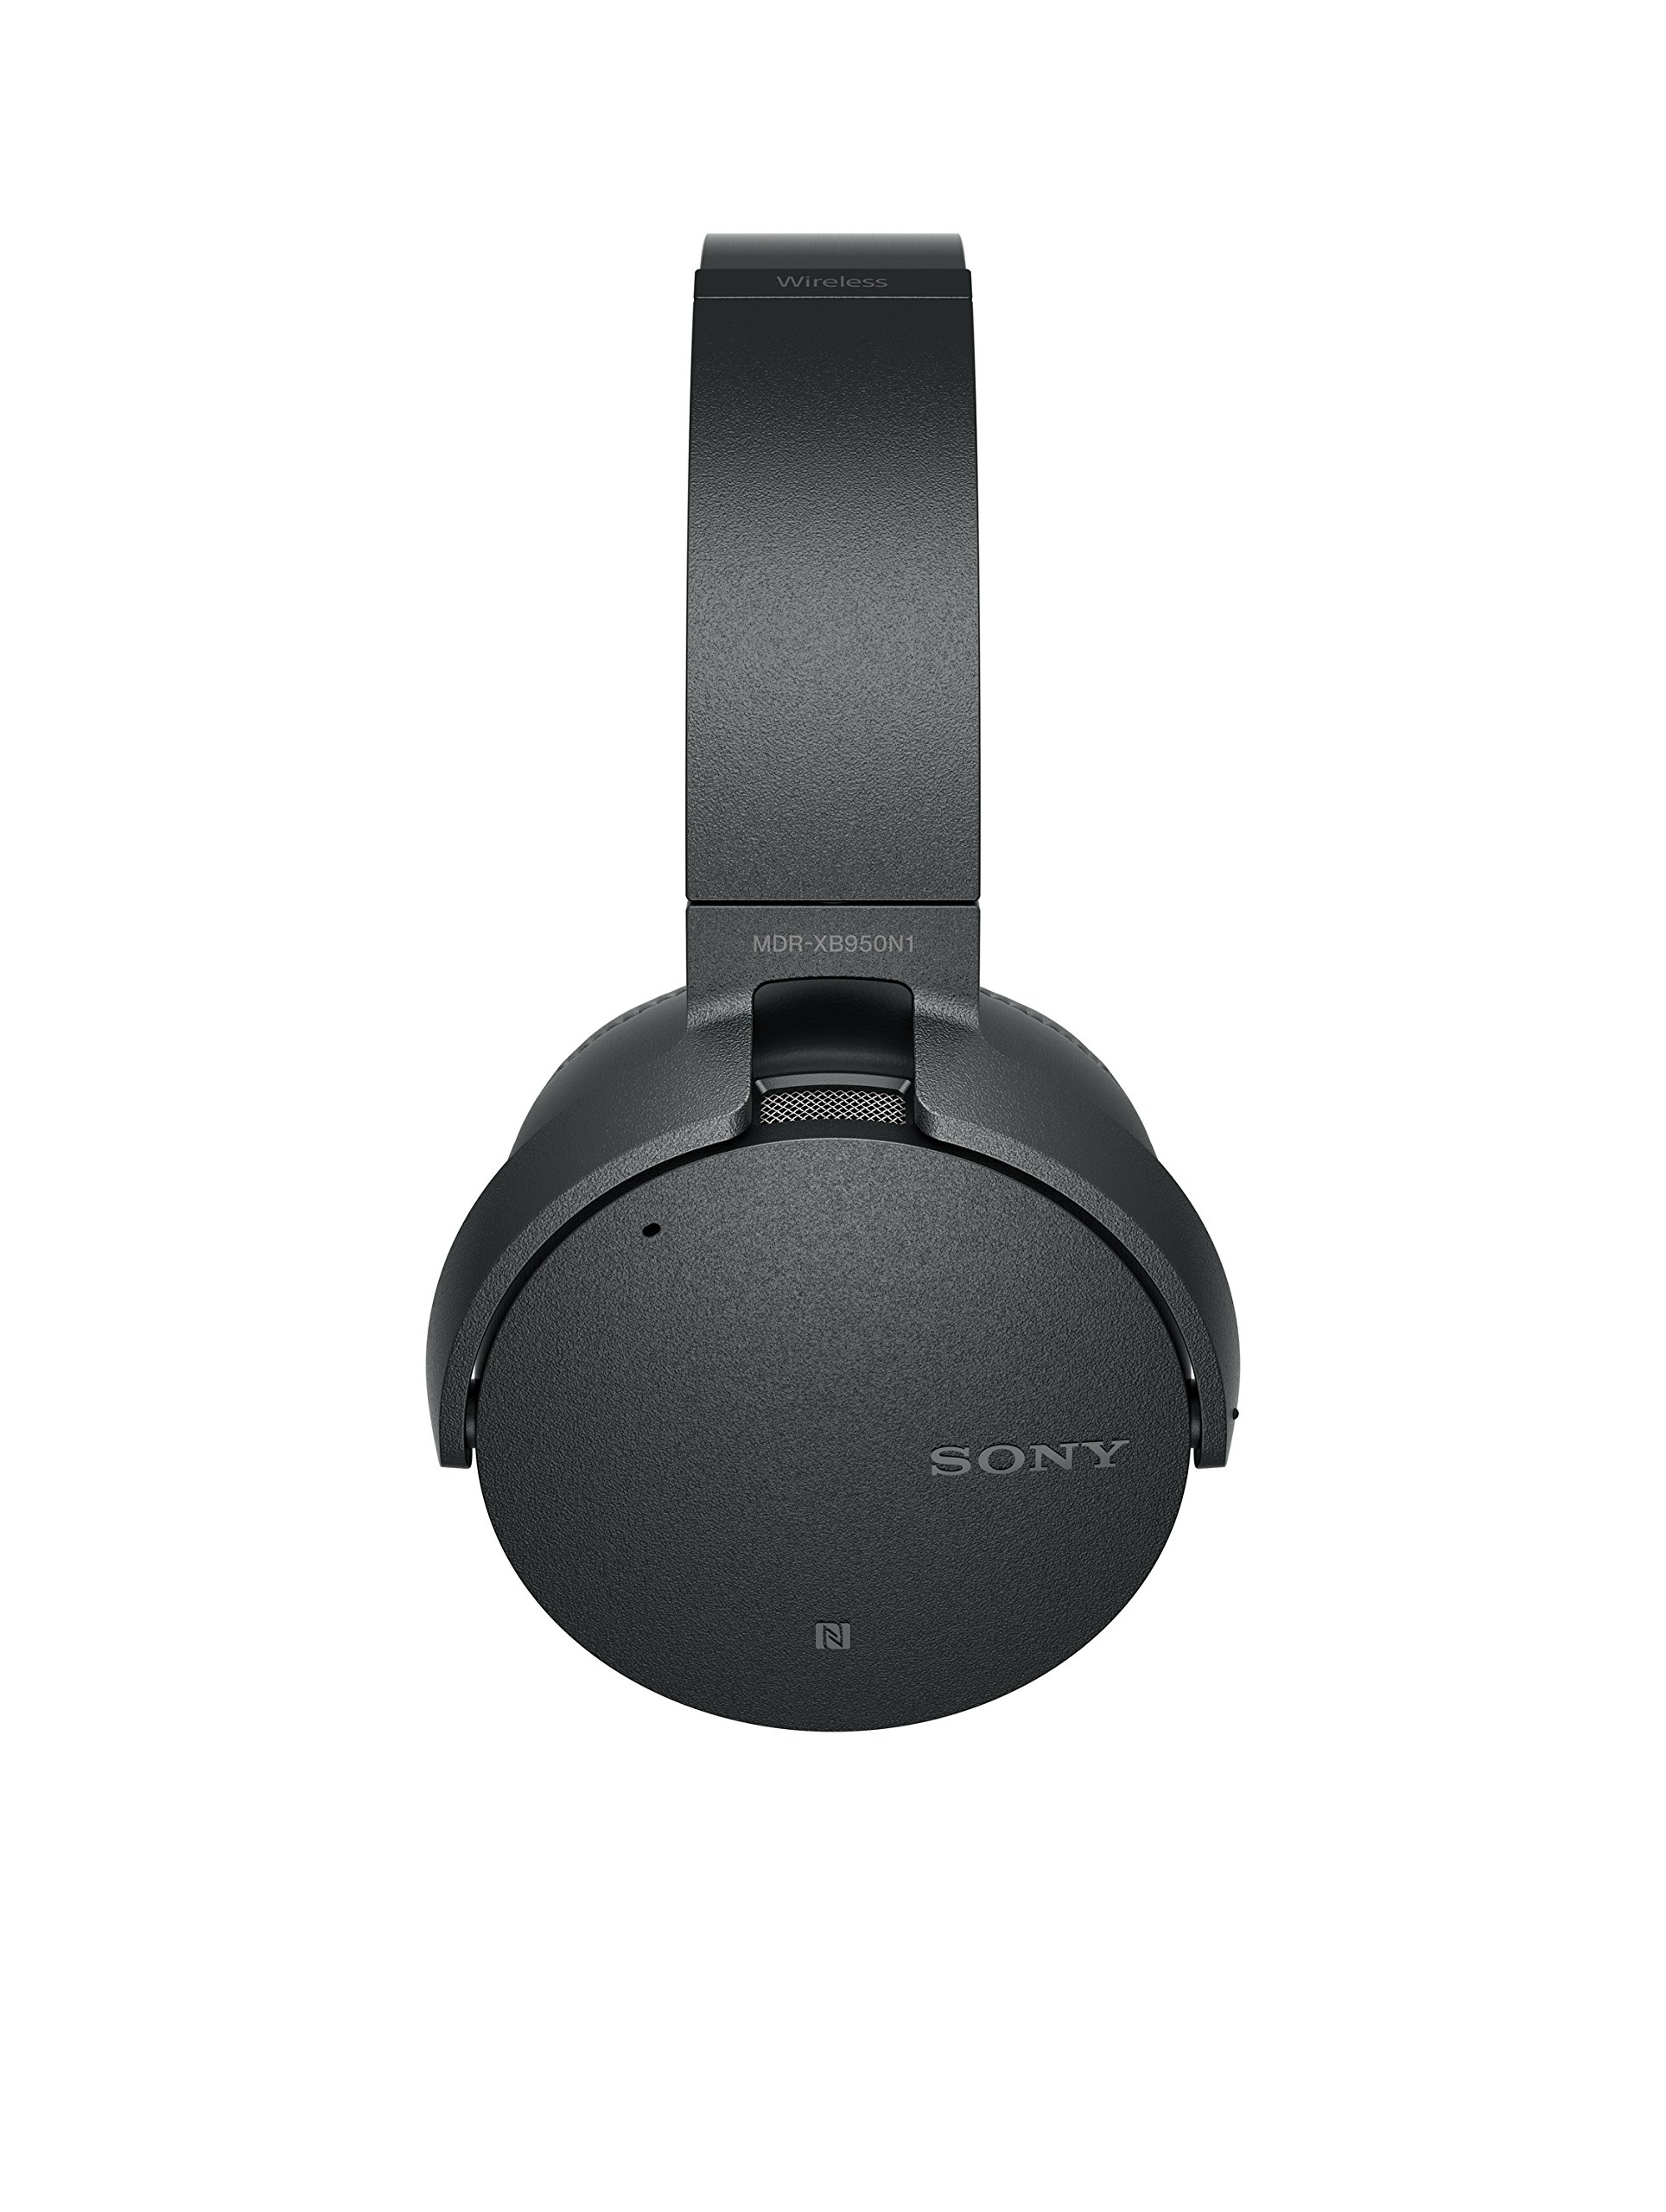 Sony XB950N1 Extra Bass Wireless Noise Canceling Headphones, Black by Sony (Image #3)